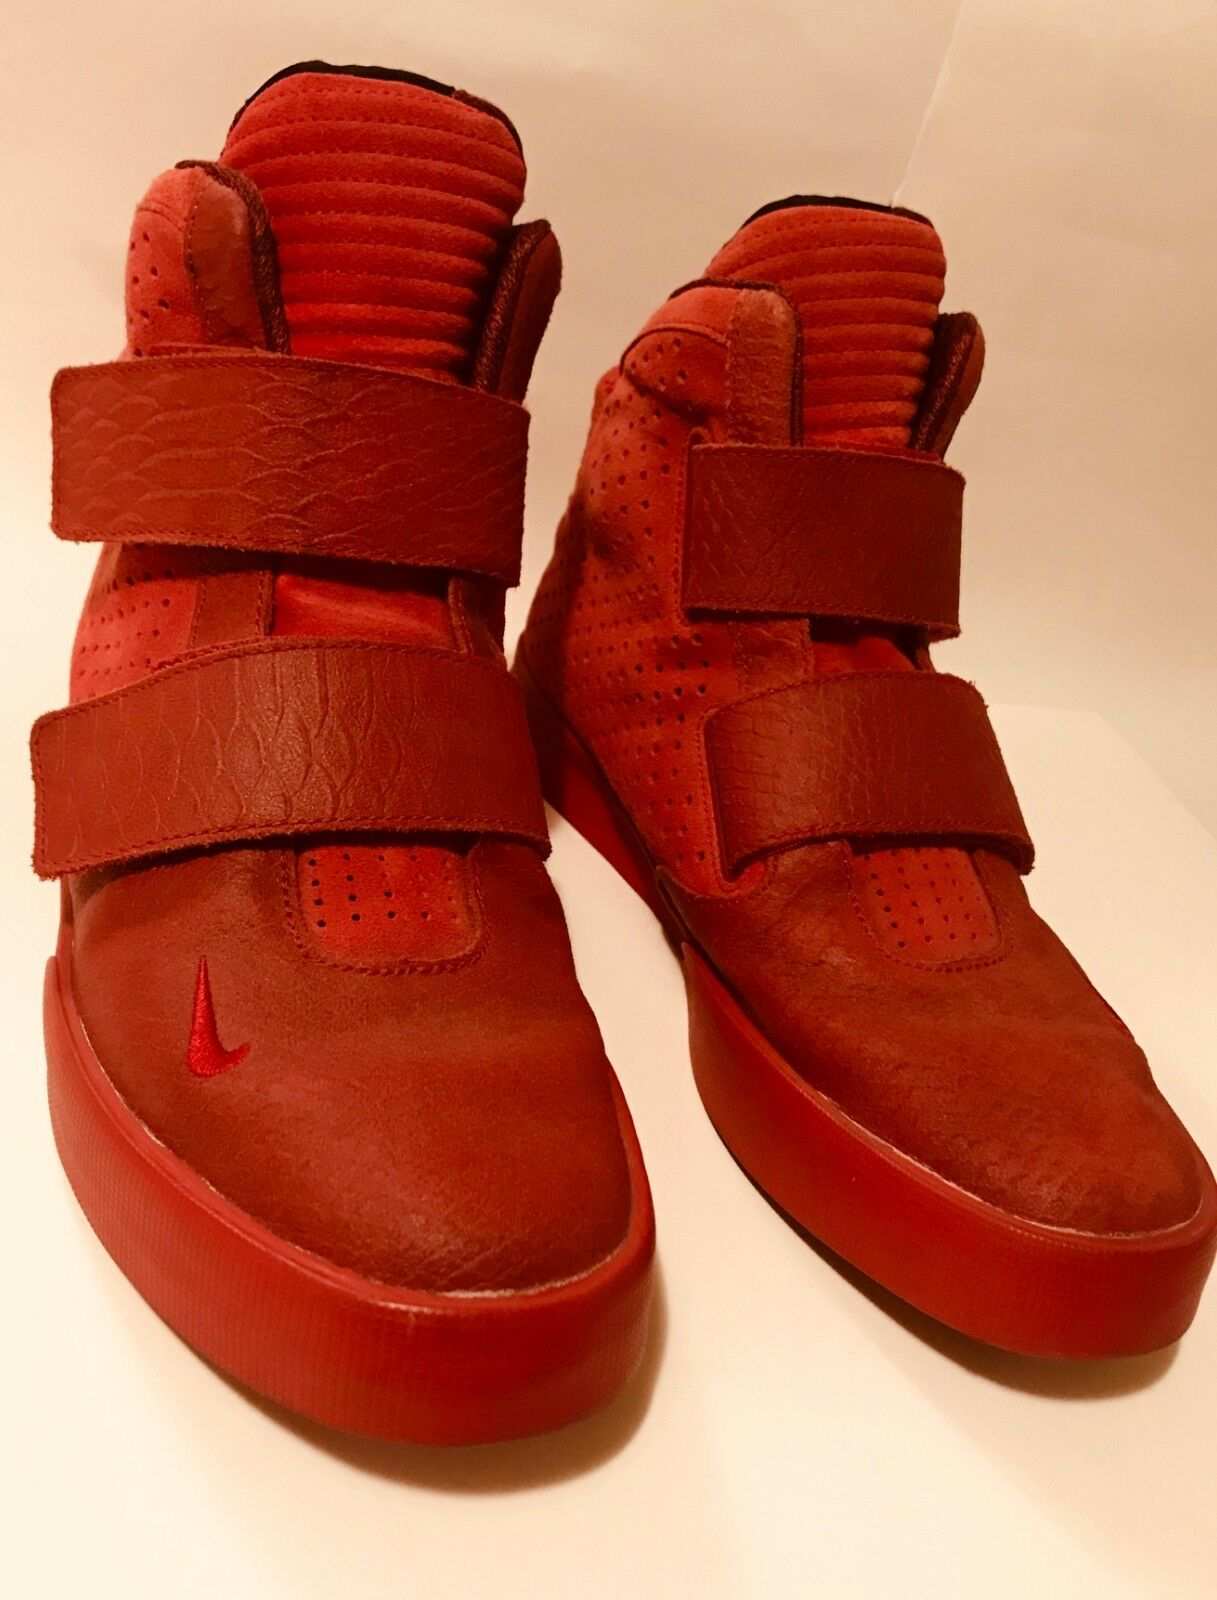 Nike Flystepper 2K3 shoes Sneakers Gym Red Red Red Mens US 10.5